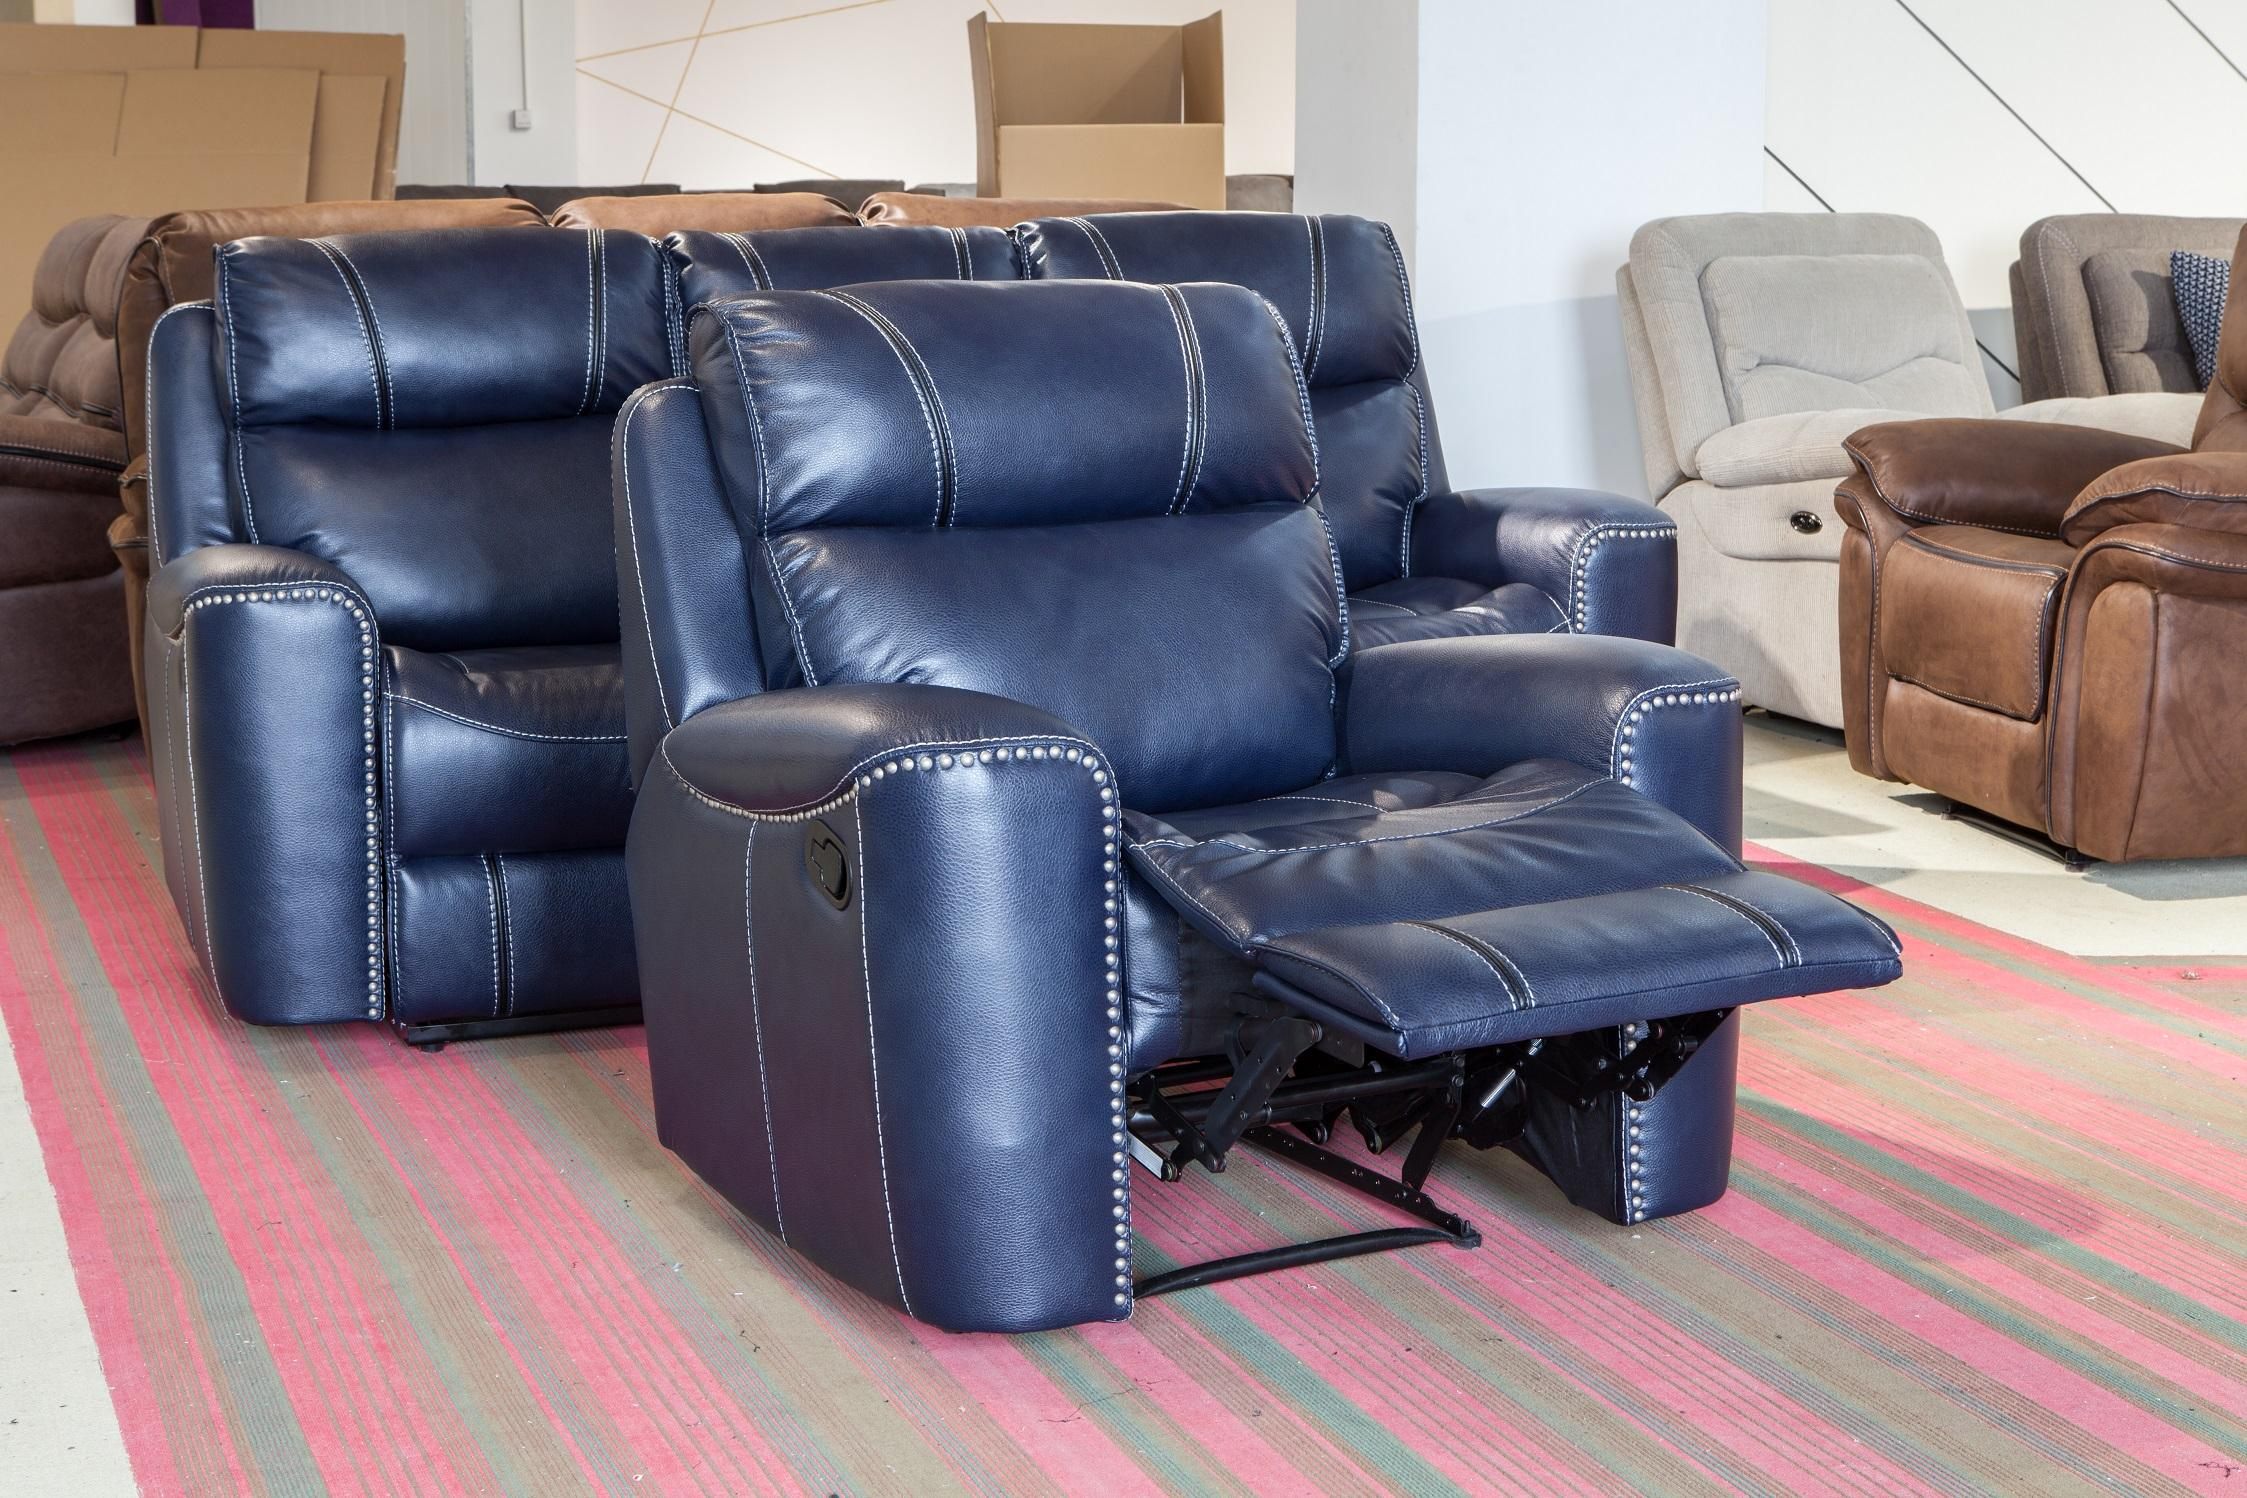 China Designer Recliners China Designer Recliners Manufacturers And Suppliers On Alibaba Com